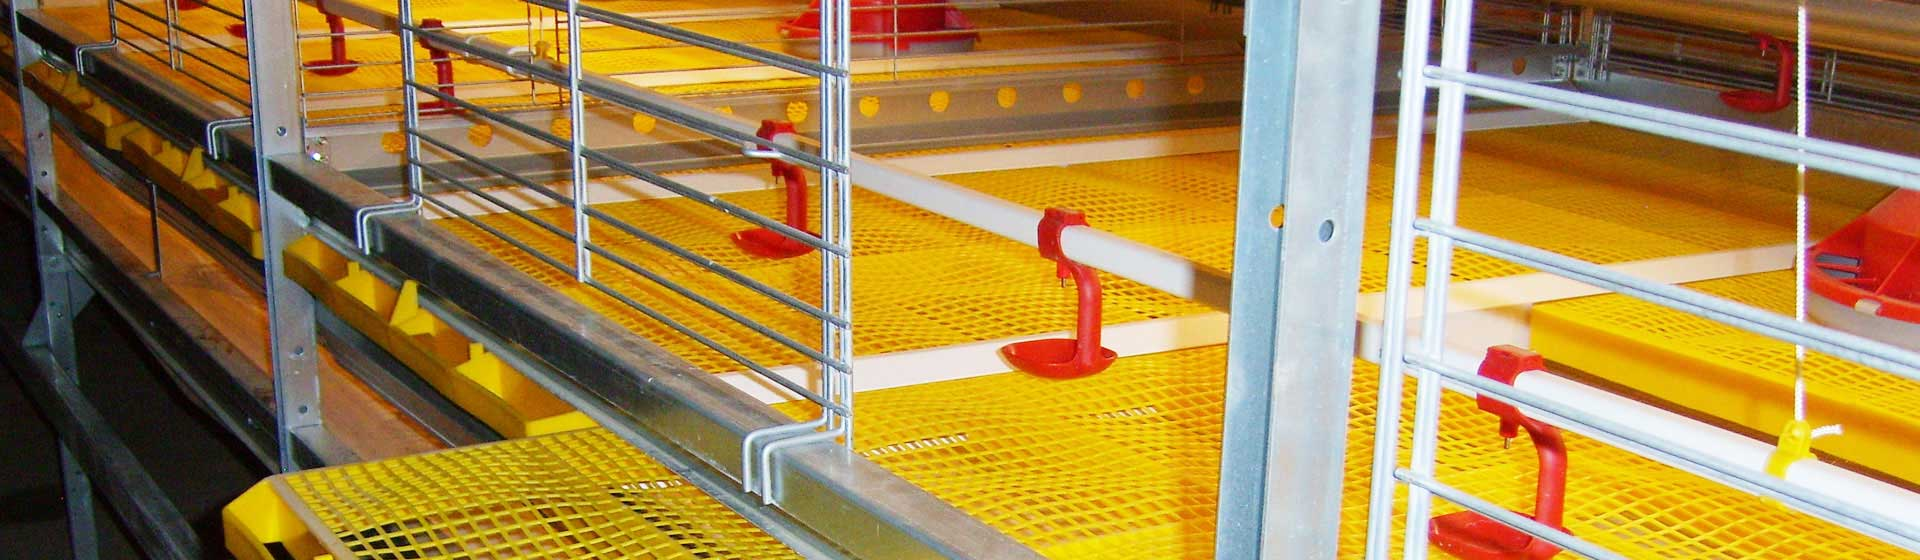 Broiler chicken cage system